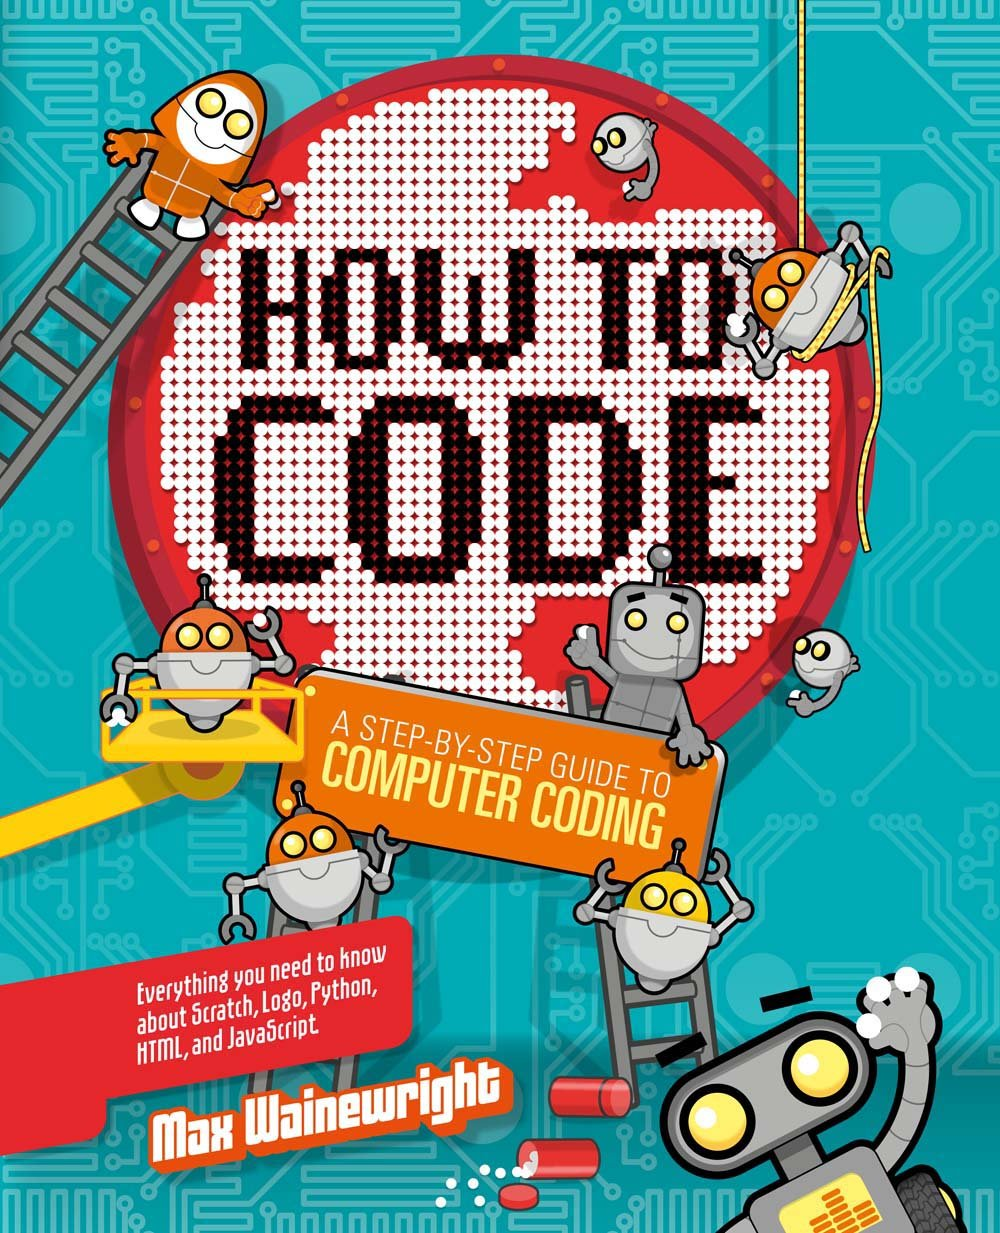 How to Code: A Step-By-Step Guide to Computer Coding by Sterling Children's Books